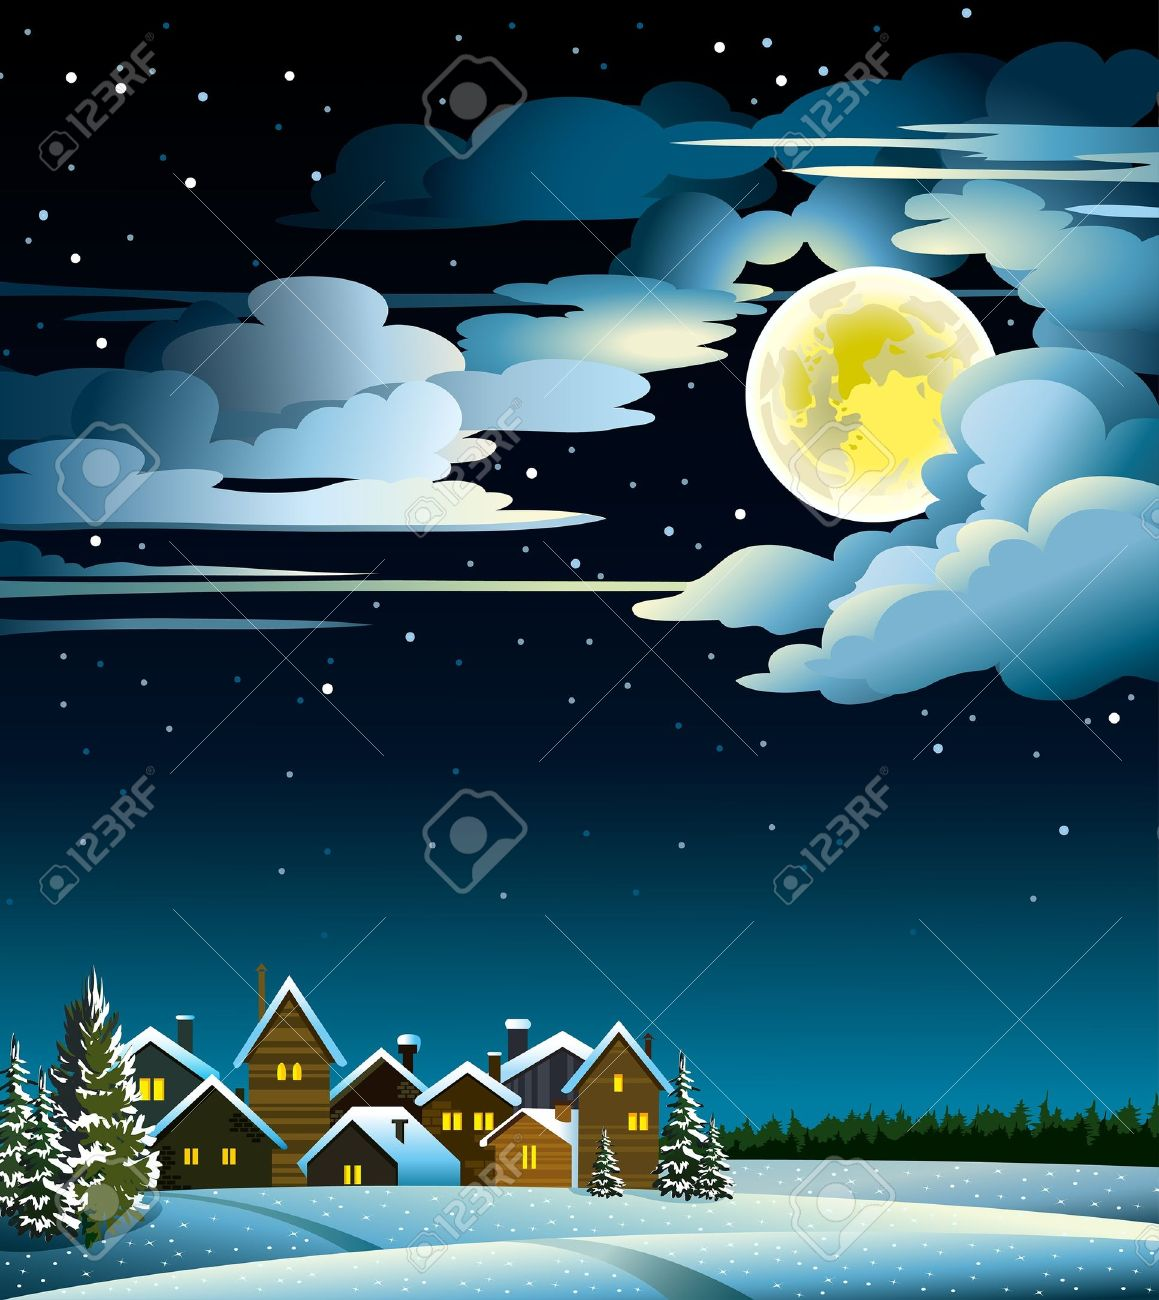 Winter landscape with snow houses, forest and fool moon Stock Vector - 15232465